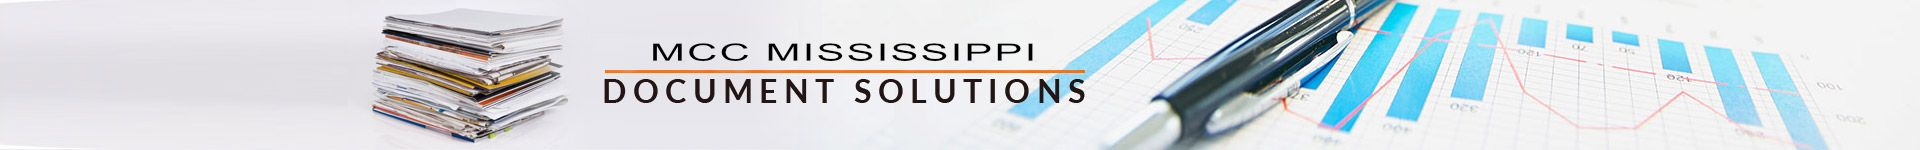 MCC Mississippi Desktop MFPs and Printers